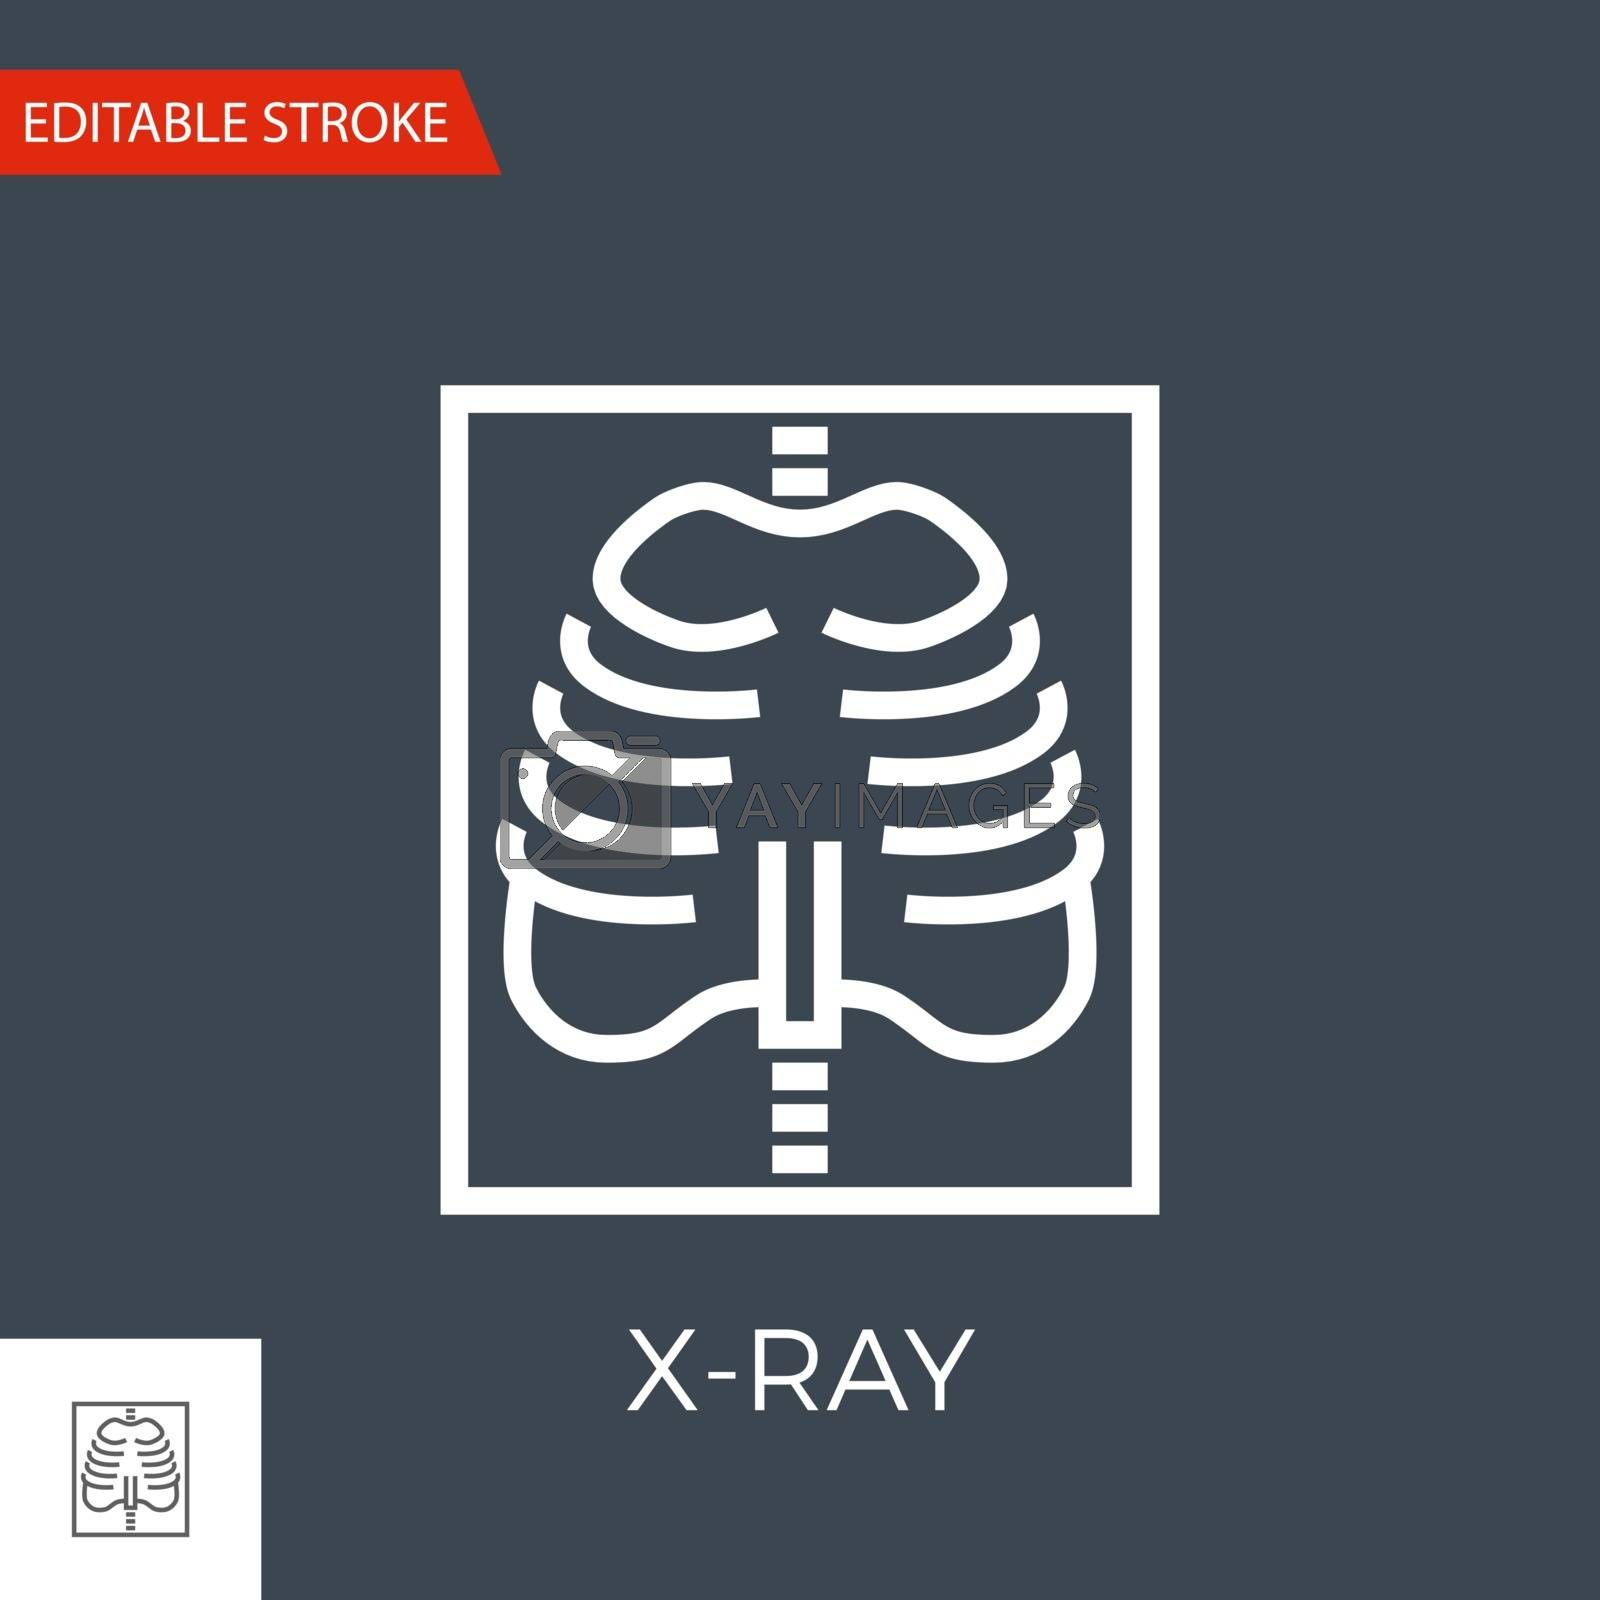 X-ray Thin Line Vector Icon. Flat Icon Isolated on the Black Background. Editable Stroke EPS file. Vector illustration.